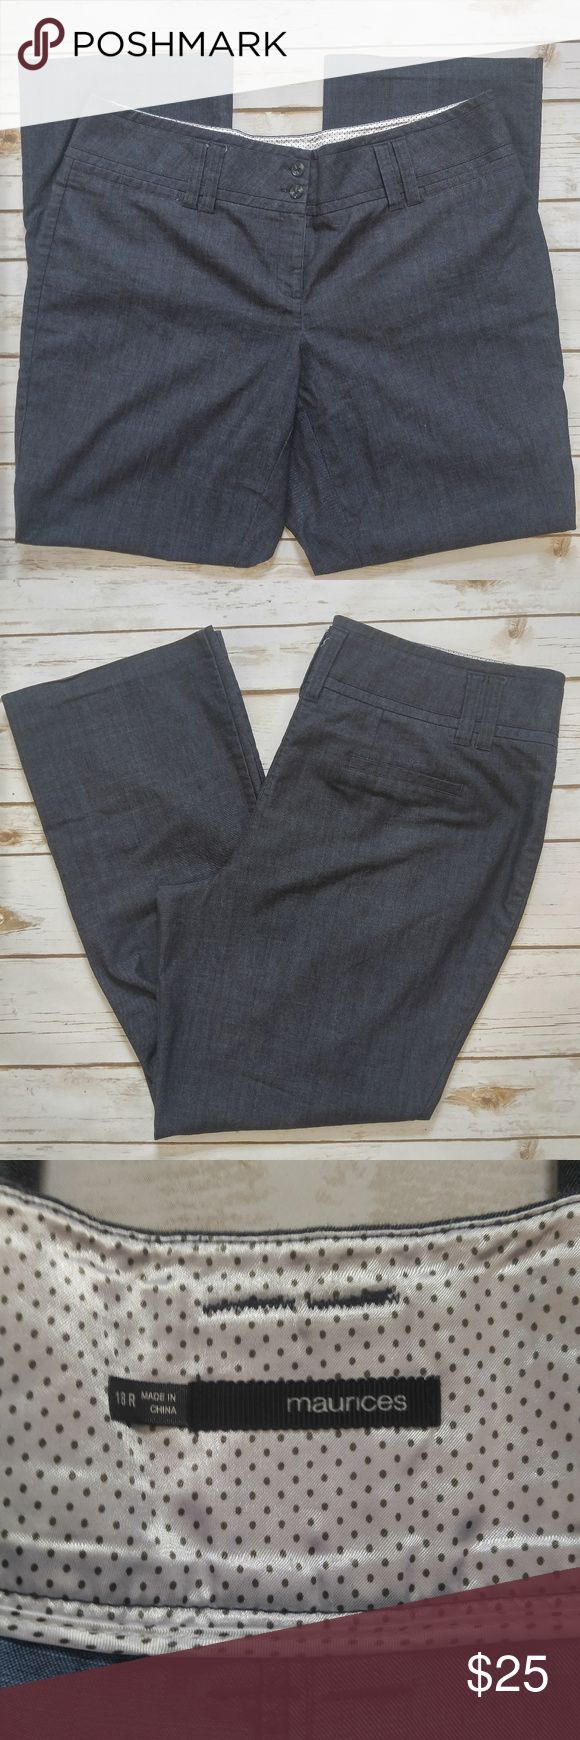 Maurices Blue Gray Dress Slacks Maurices Blue Gray Dress Slacks Size 18 Regular in excellent used condition. Please feel free to ask any questions or bundle with other listings in my closet for a custom discount on your order. I ship the same day as long as the order is placed before 11:00 AM Central time. If you would like to be notified about price drops remember to 'like' the item to bookmark it! Thank you for checking out my closet and happy poshing! Maurices Pants Straight Leg